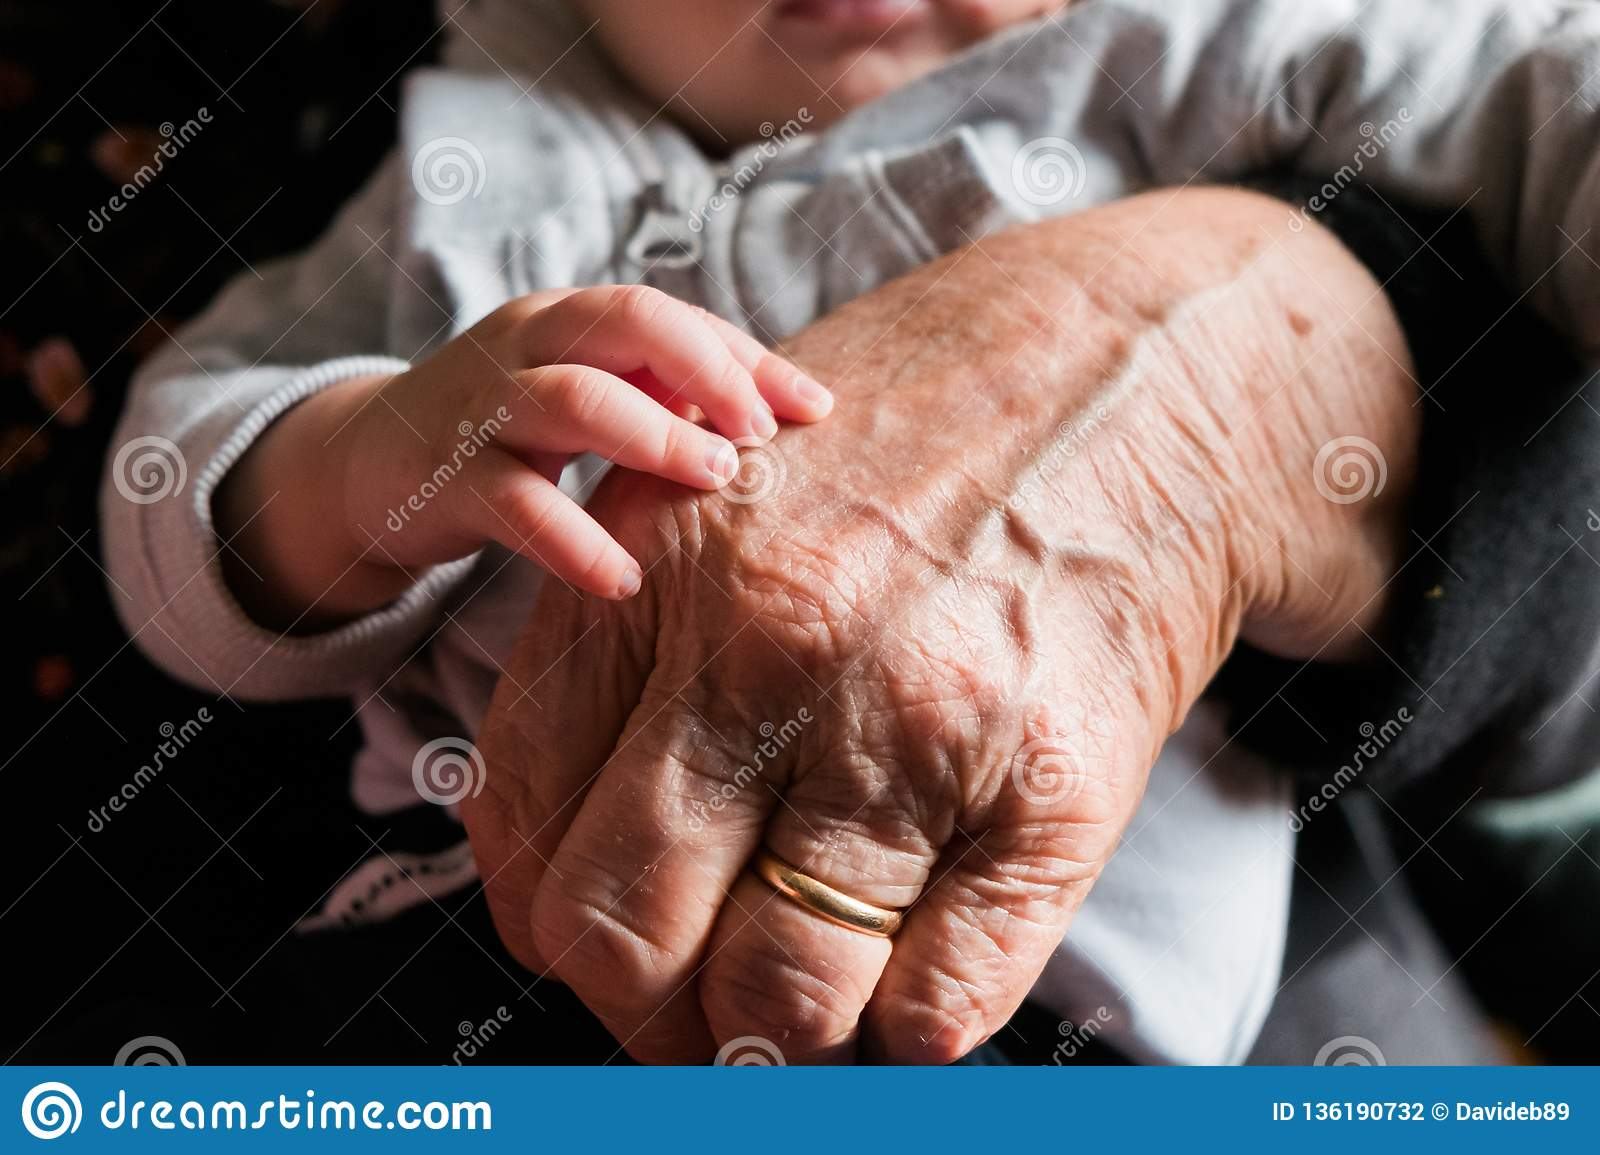 Small baby hand touching and caressing old grandmother hand with wrinkles, symbol of passing generations